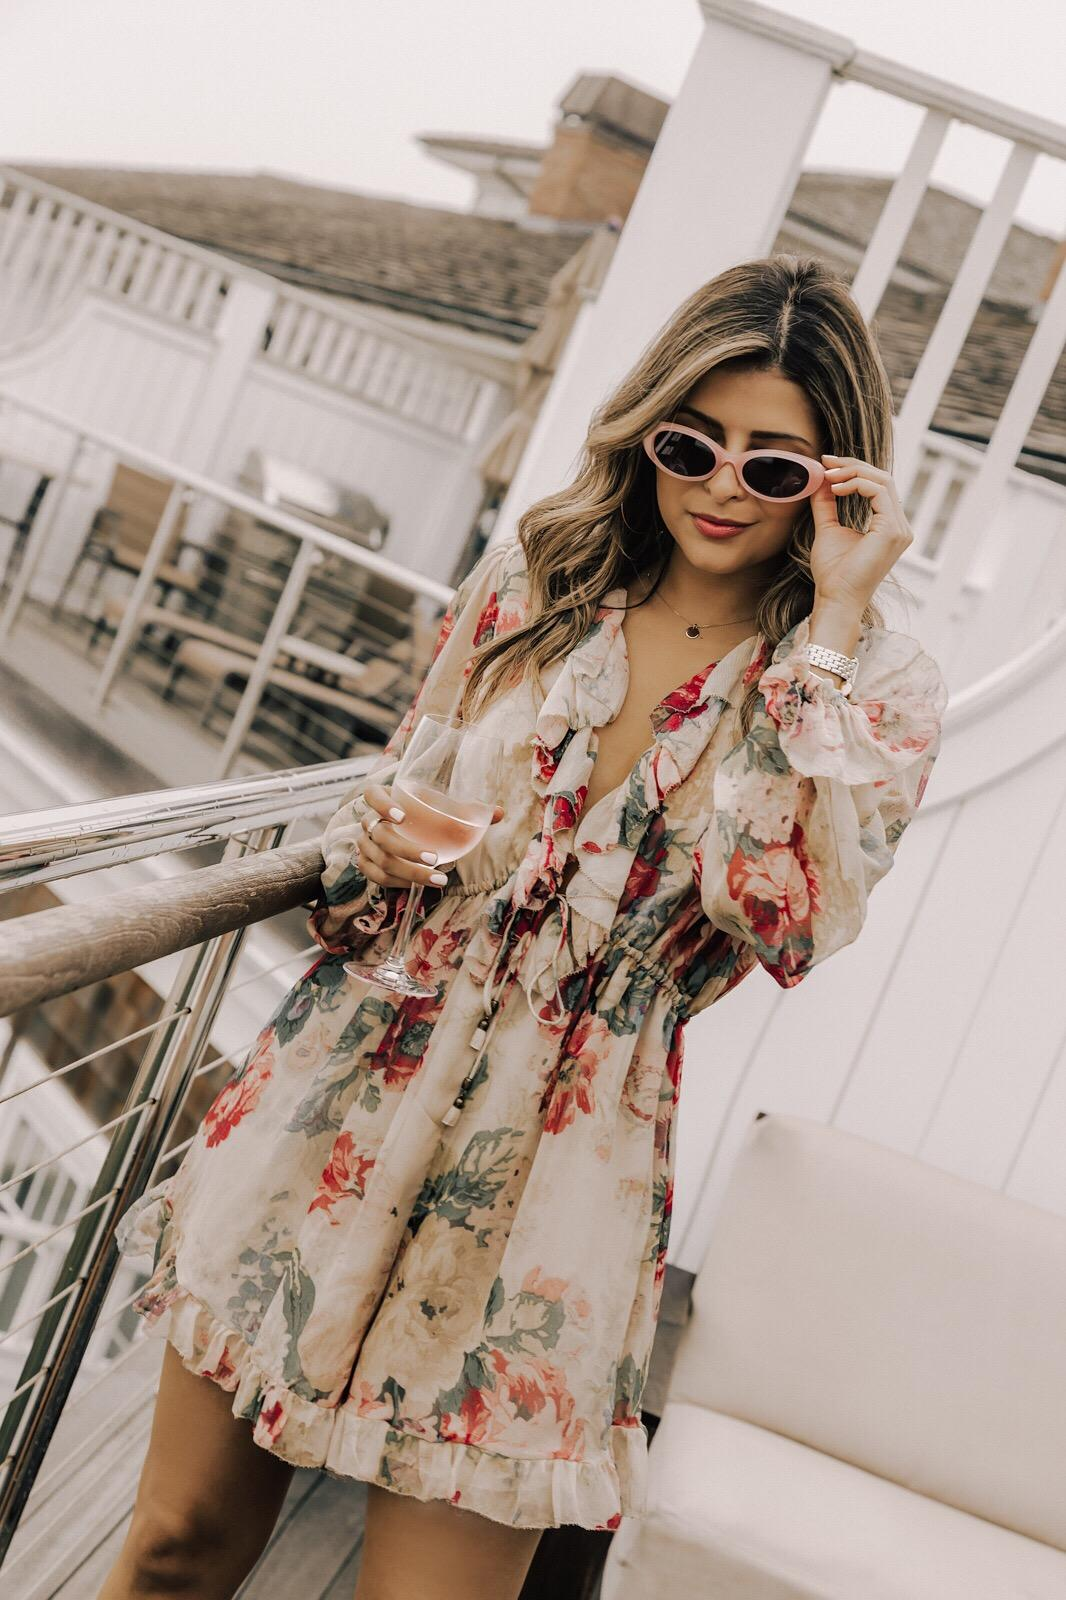 034f29934bb 5 Summer Outfits To Wear In The Hamptons - The Girl from Panama